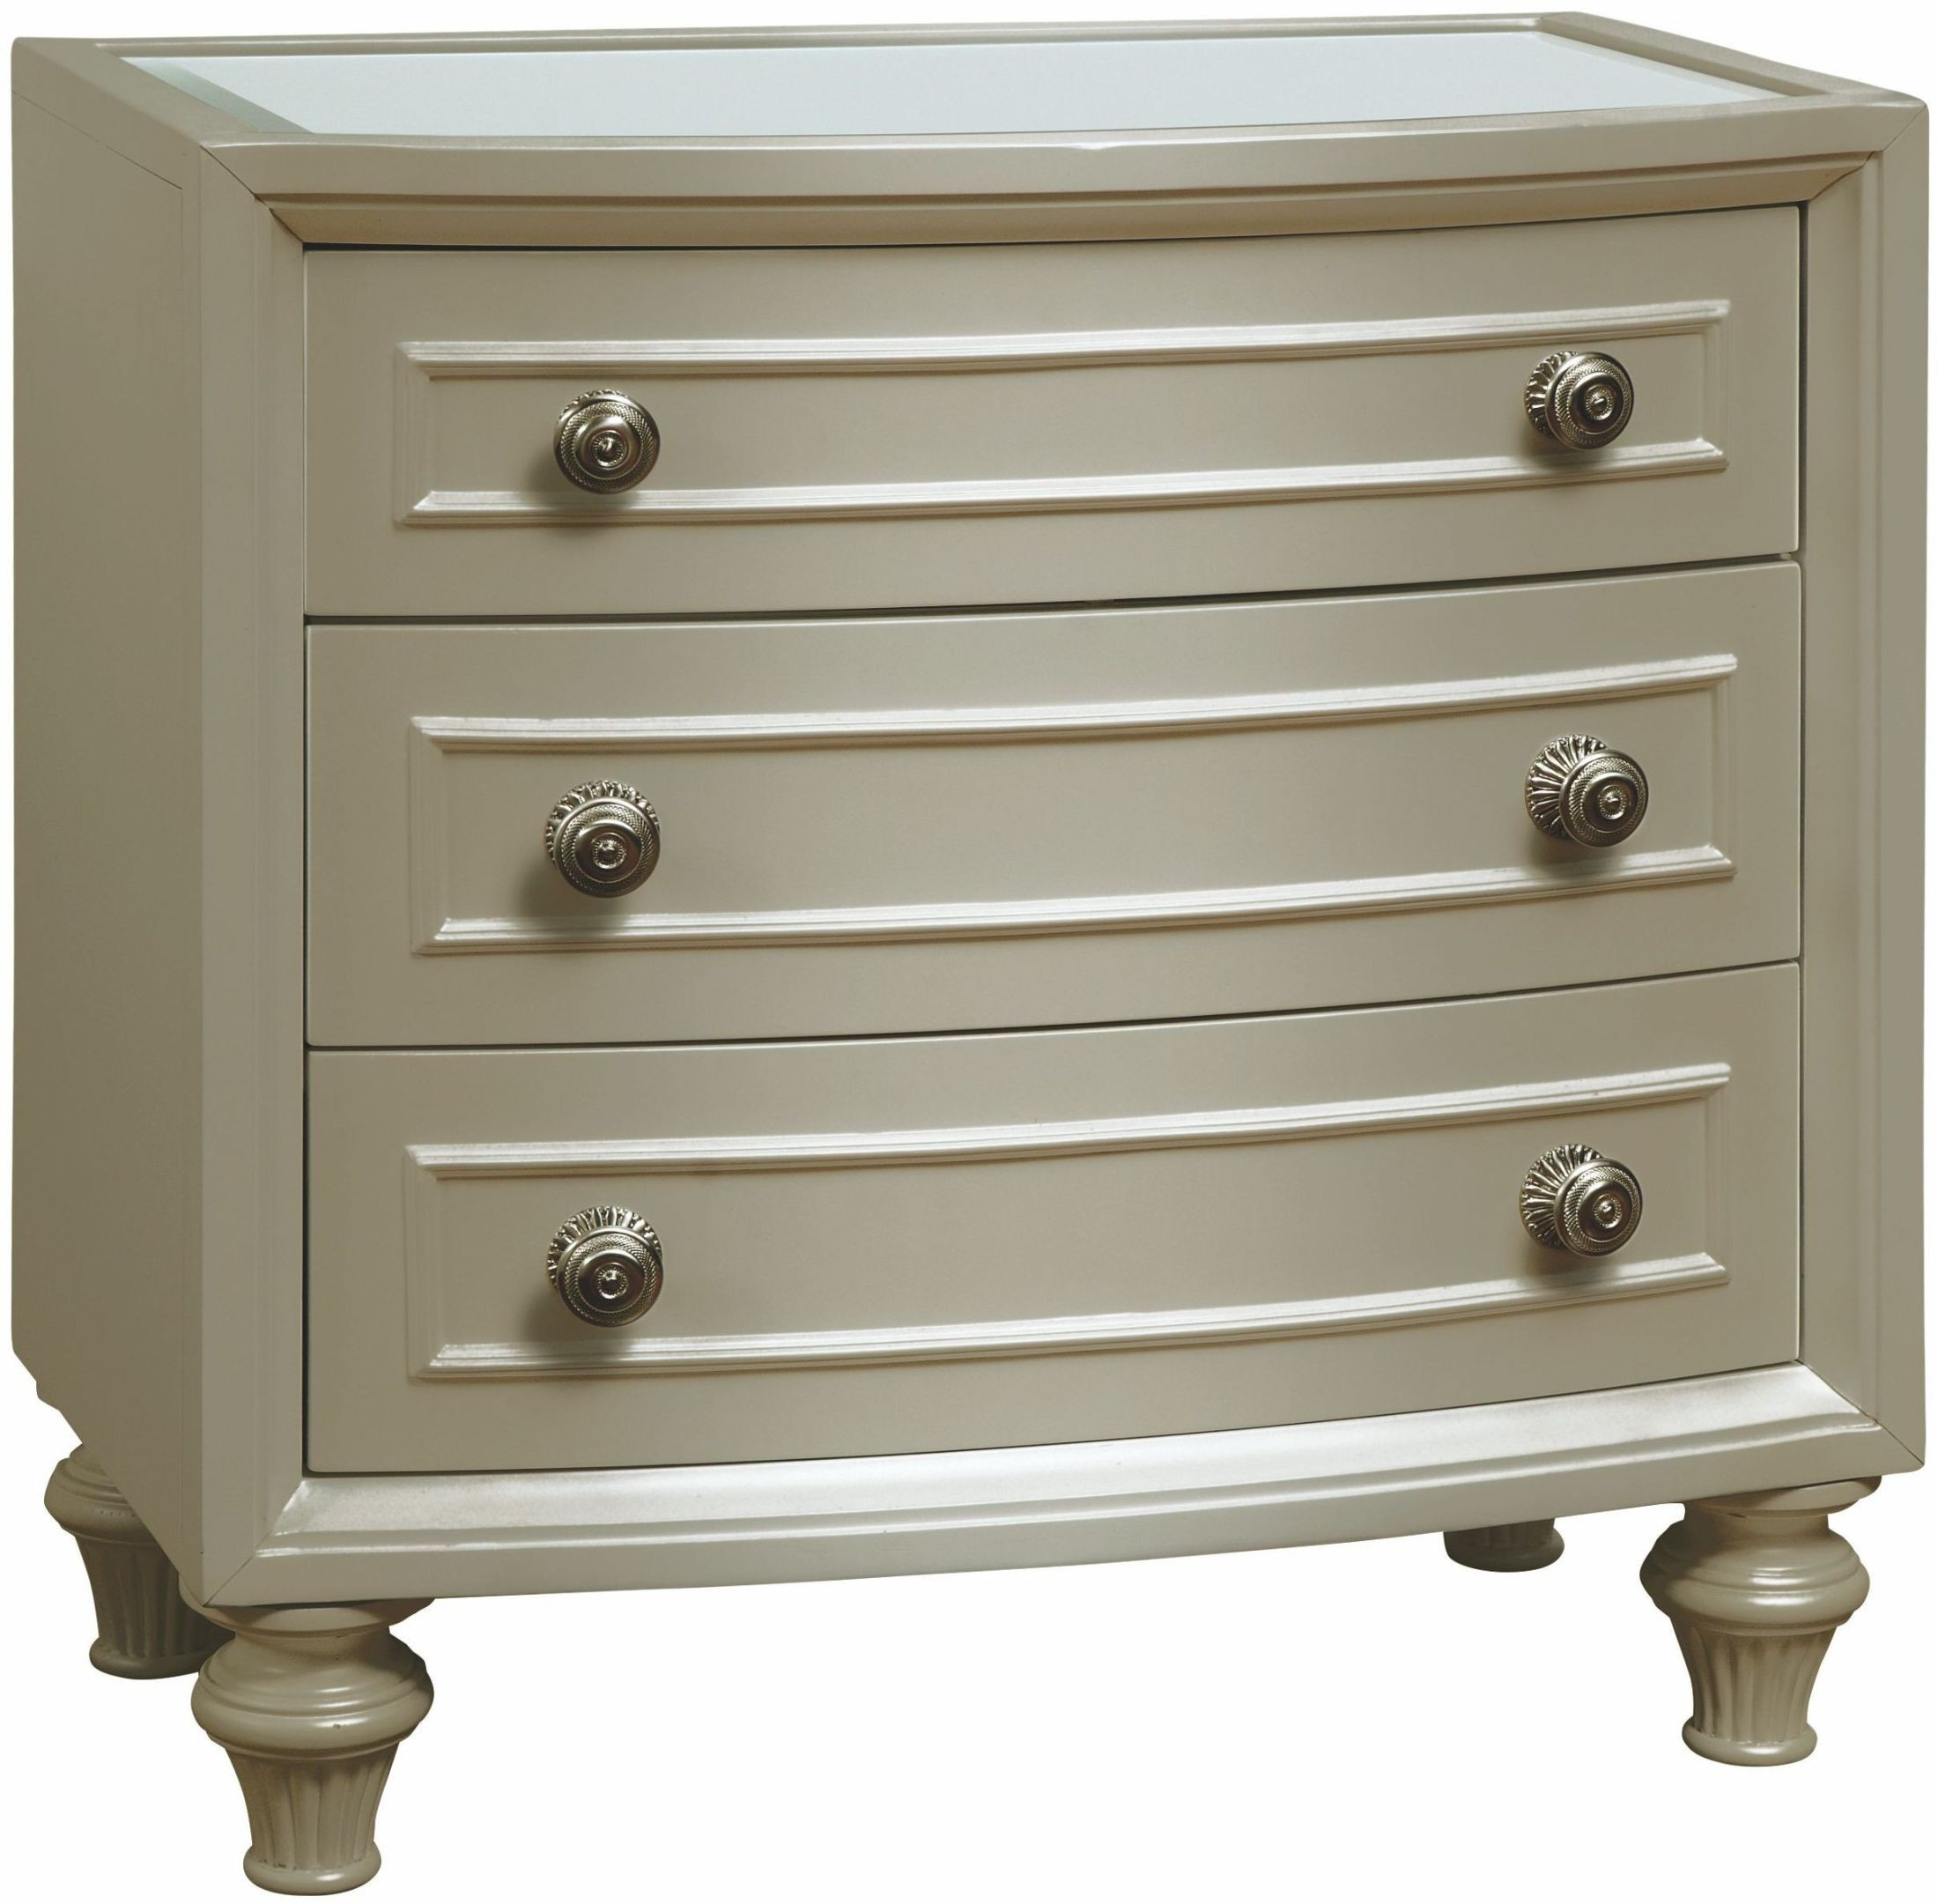 Regency Park Pearlized Silver Nightstand From Avalon